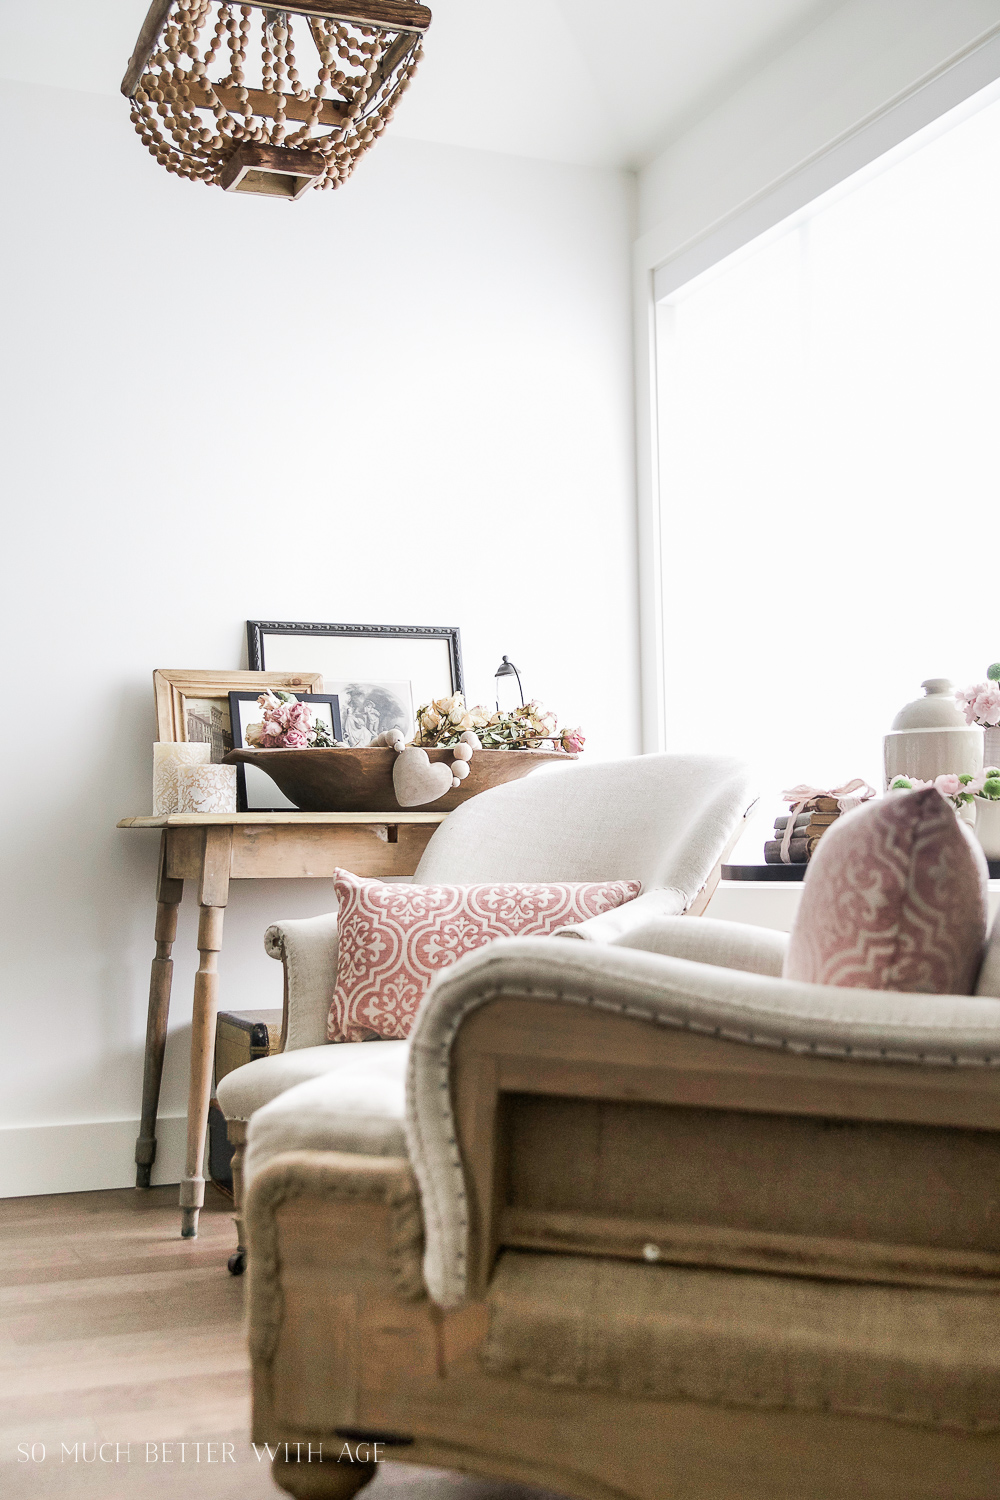 10 Easy Spring Decorating Ideas from Expert Decorators